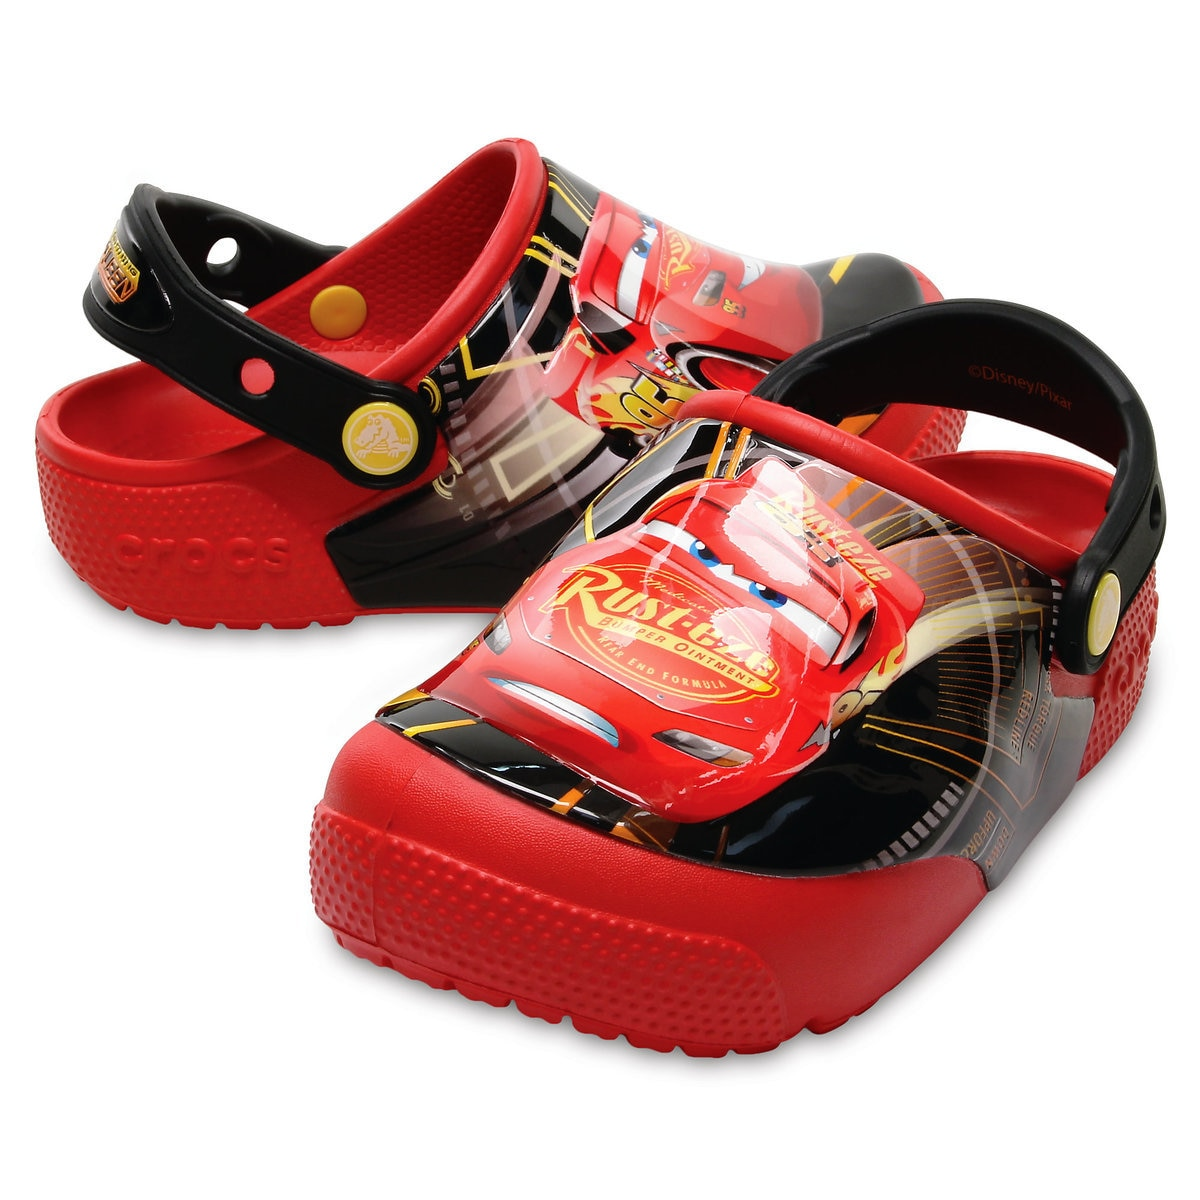 146b99f176 Product Image of Lightning McQueen Crocs™ Light-Up Clogs for Boys   1